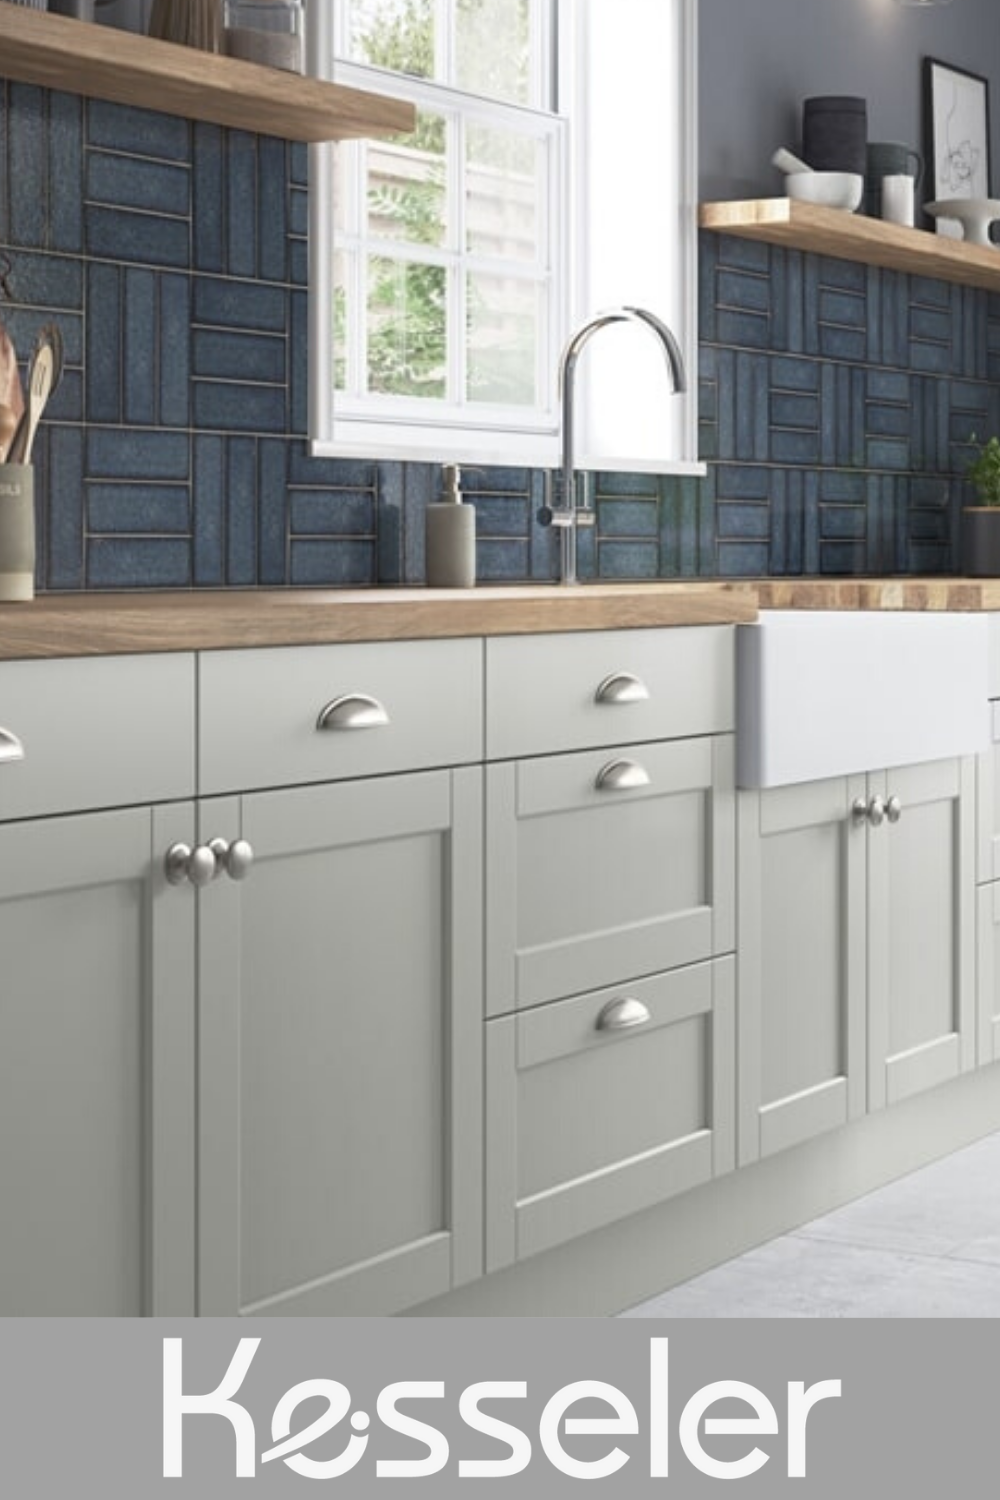 Light Grey Shaker Kitchen With Wood Worktop In 2020 Shaker Style Kitchen Cabinets Grey Shaker Kitchen Grey Kitchen Designs